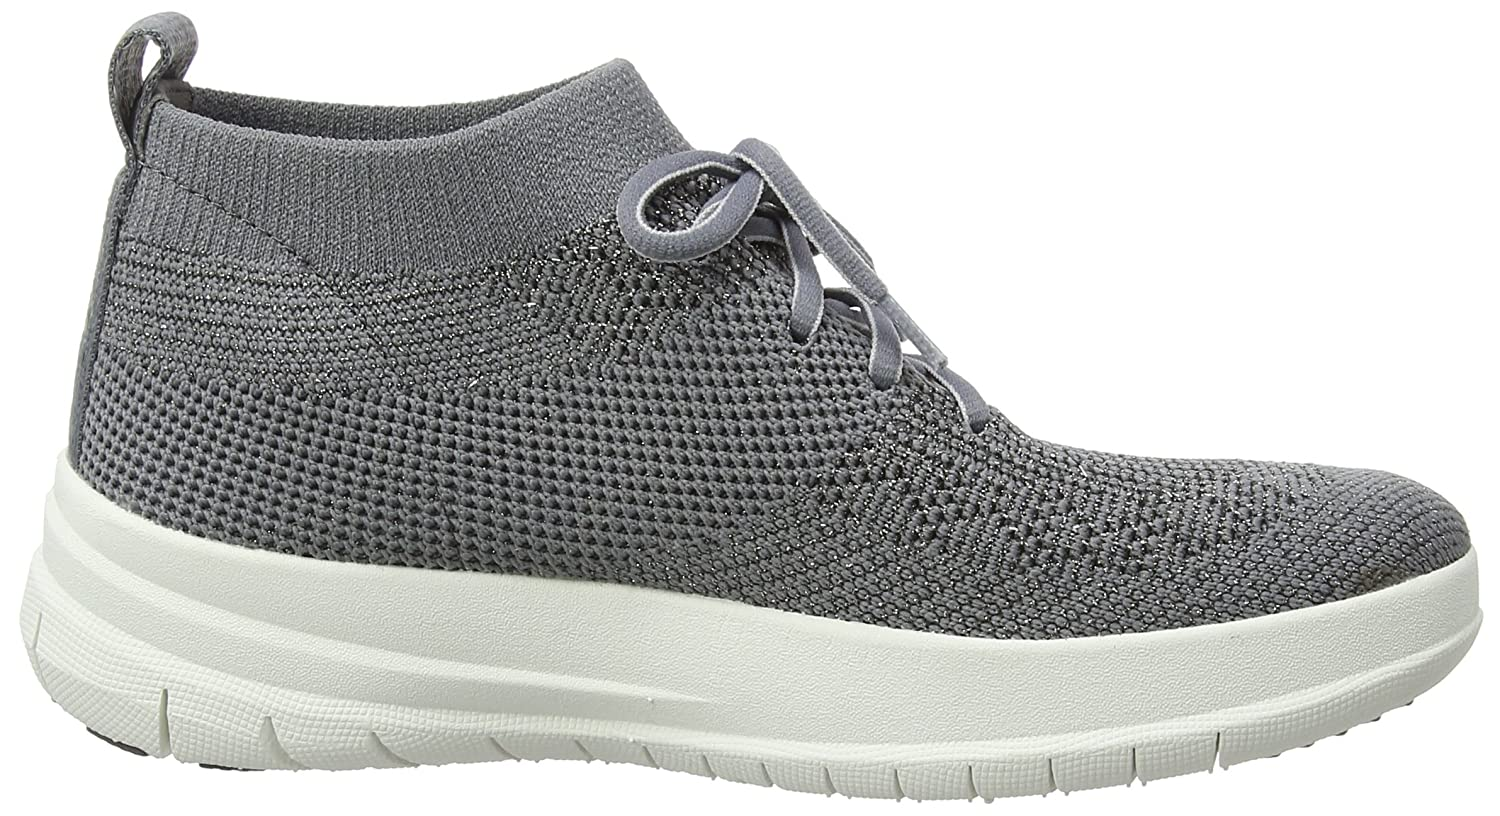 FitFlop Damen Uberknit Slip-on grau, High Top Hohe Sneaker, grau, Slip-on One Größe Multicolour (Charcoal/Metallic Pewter 551) ecab94